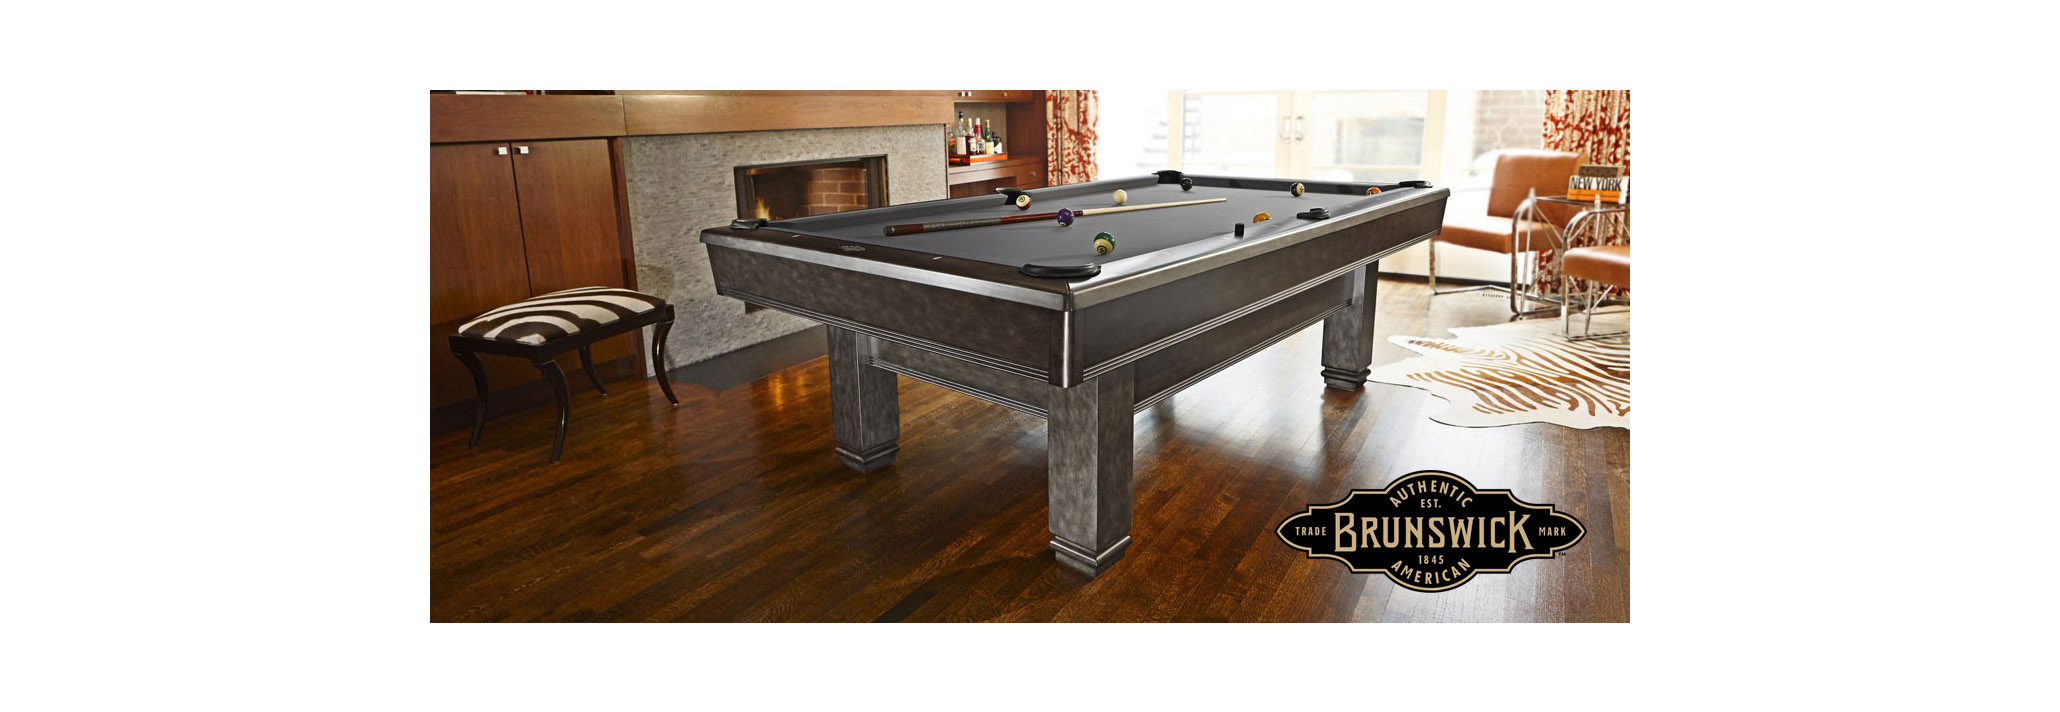 NOW OFFERING BRUNSWICK BILLIARDS